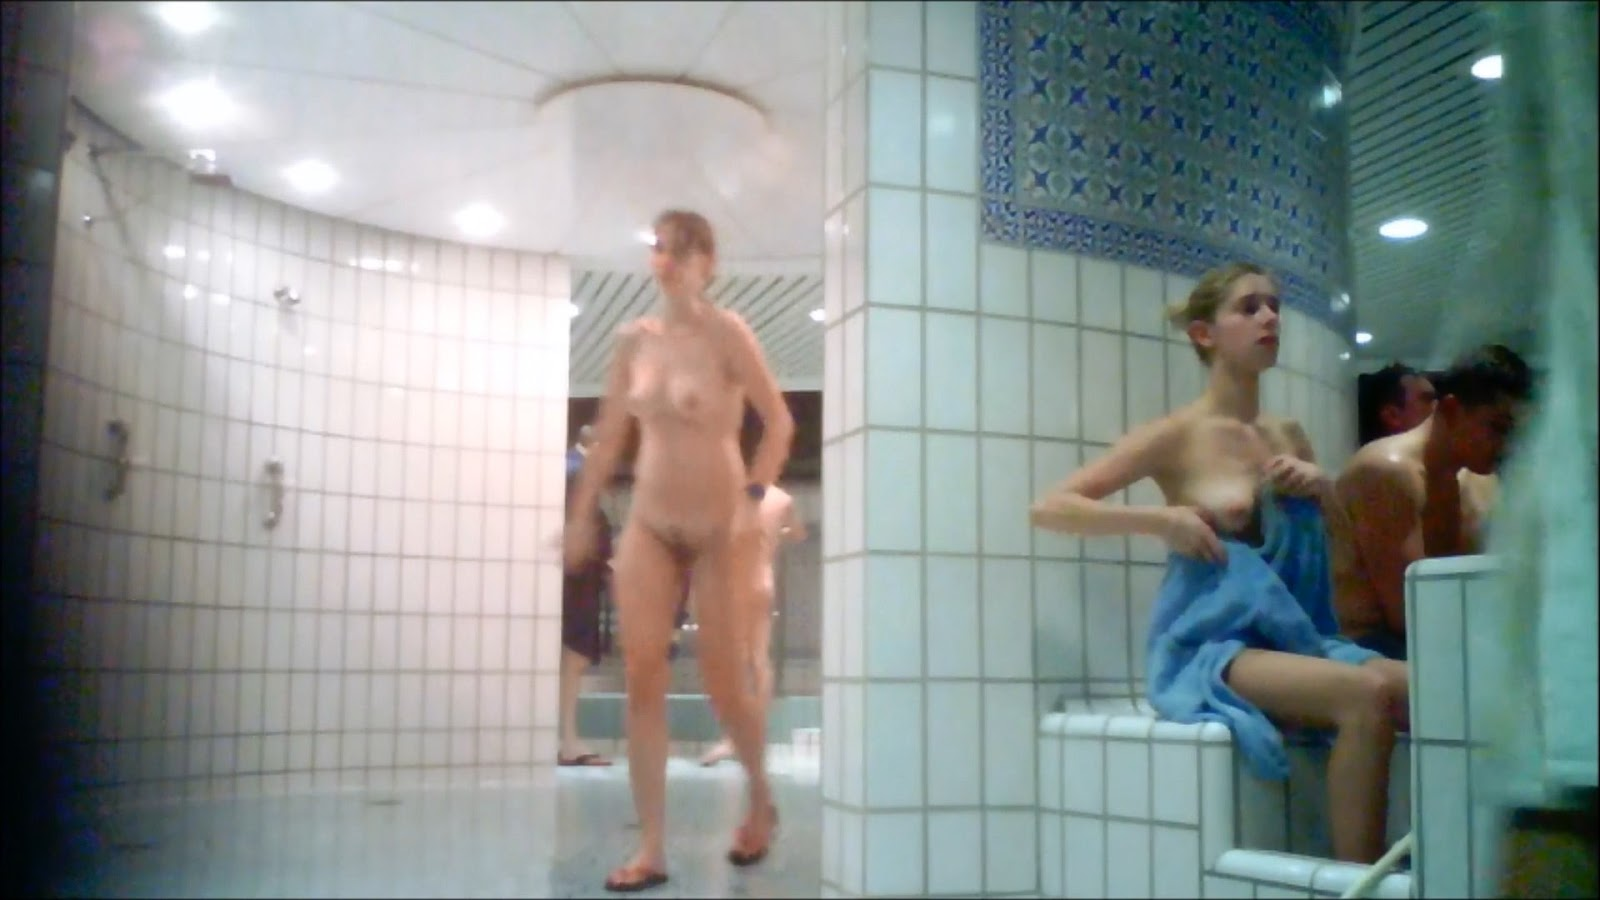 public naked shower